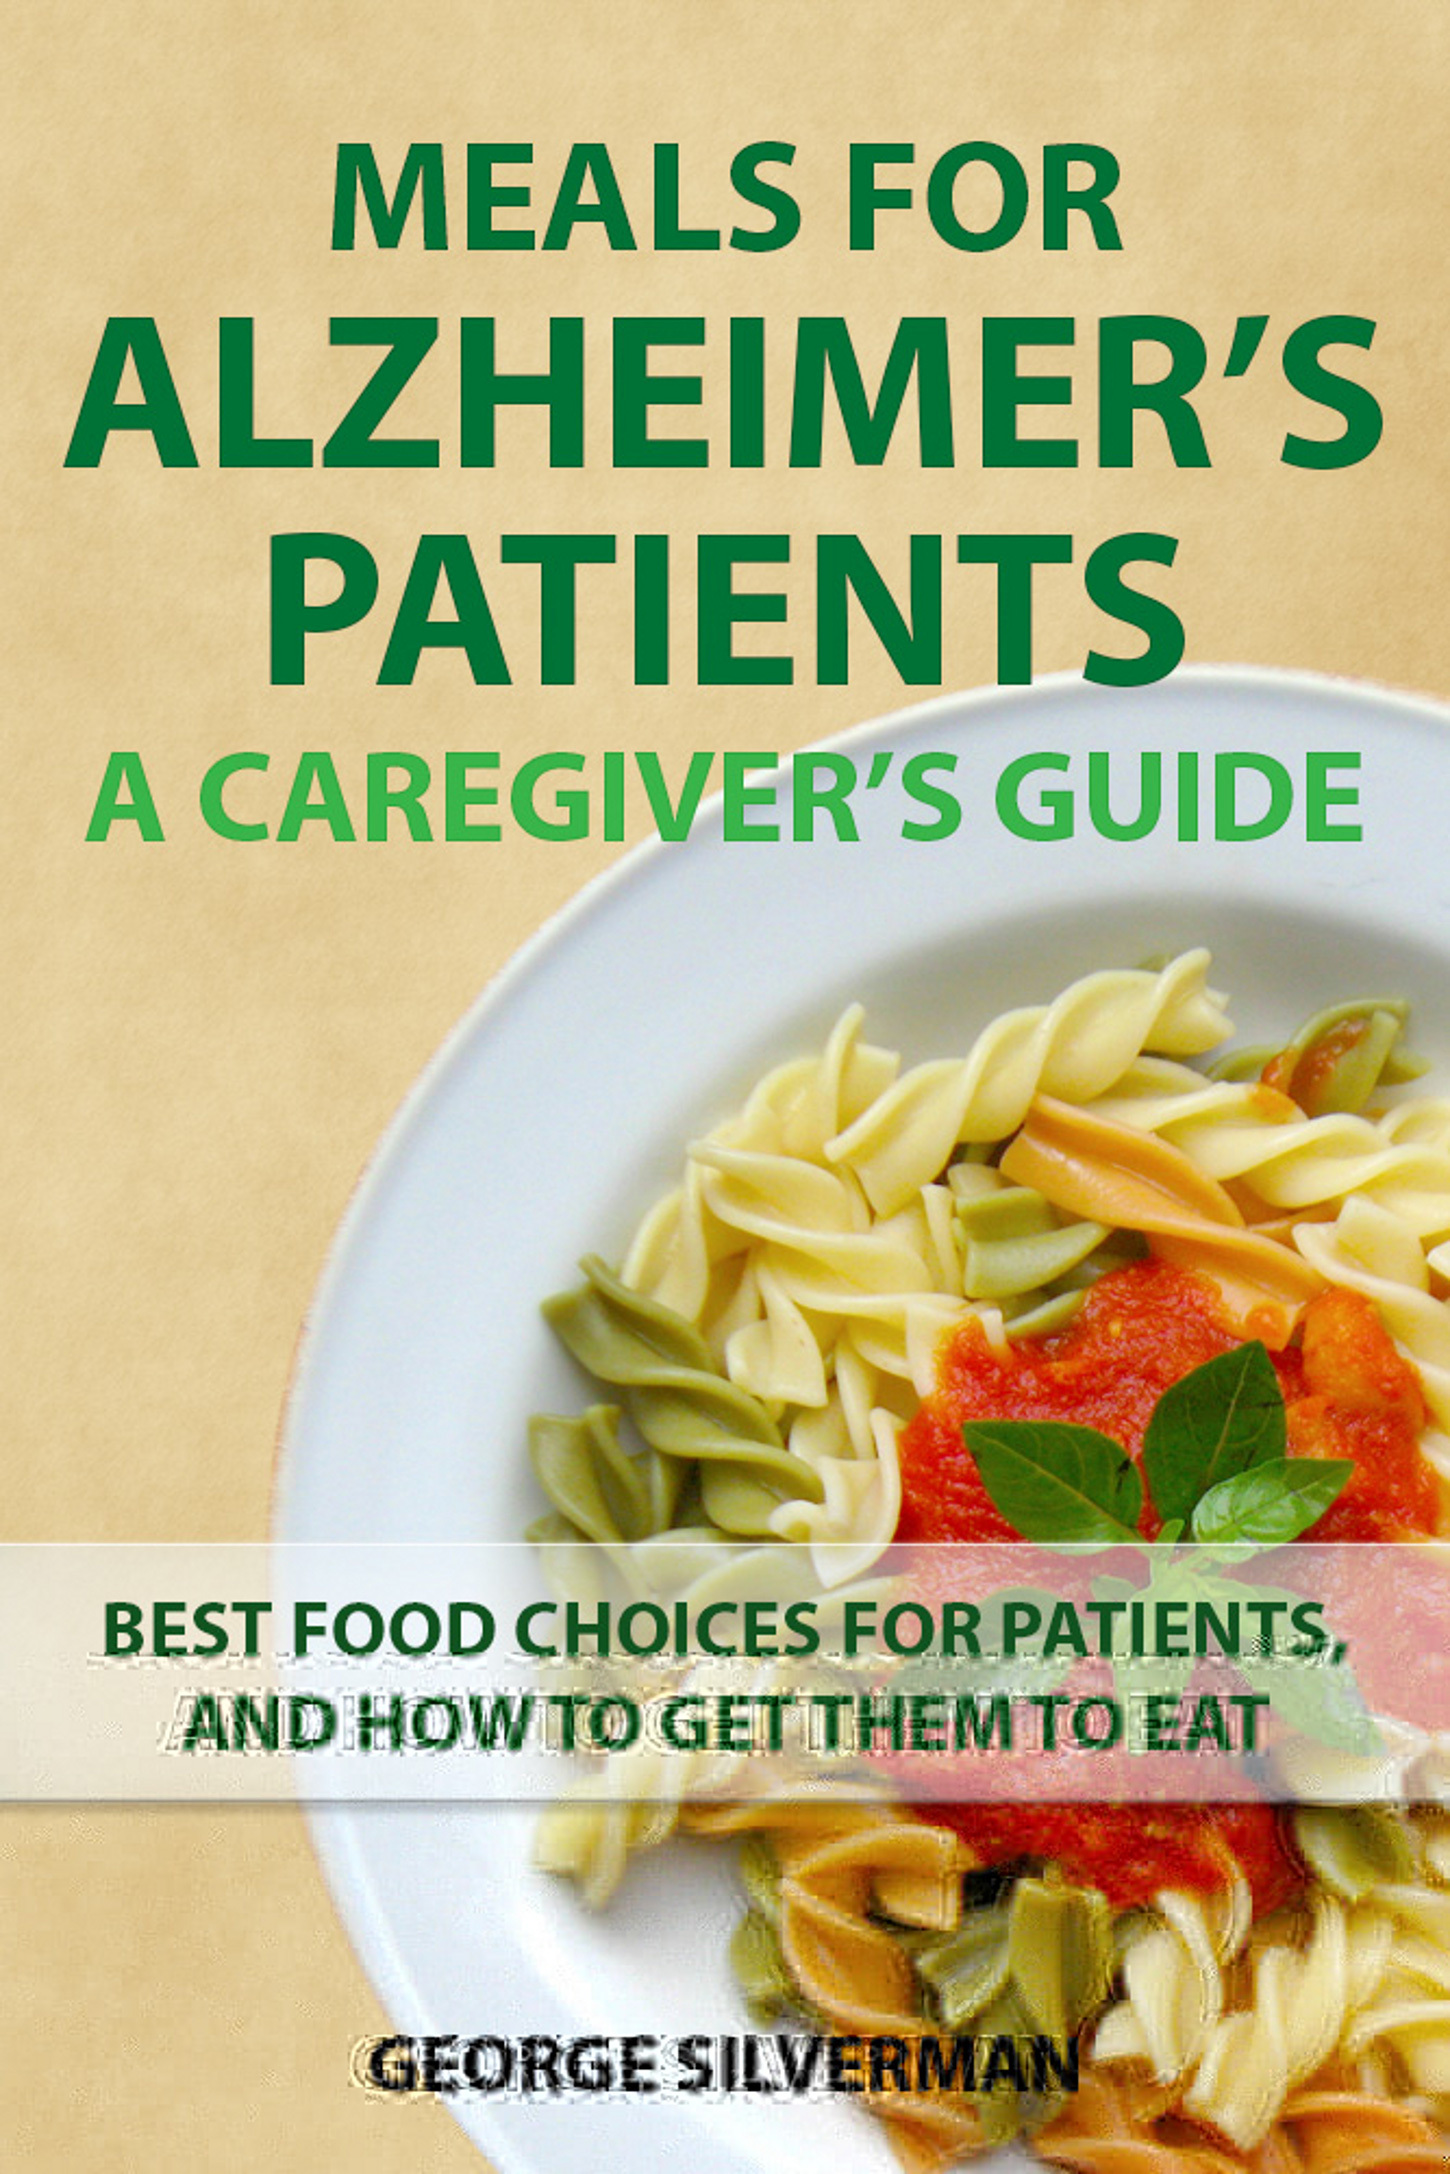 Meals for Alzheimer's Patients: A Caregiver's Guide